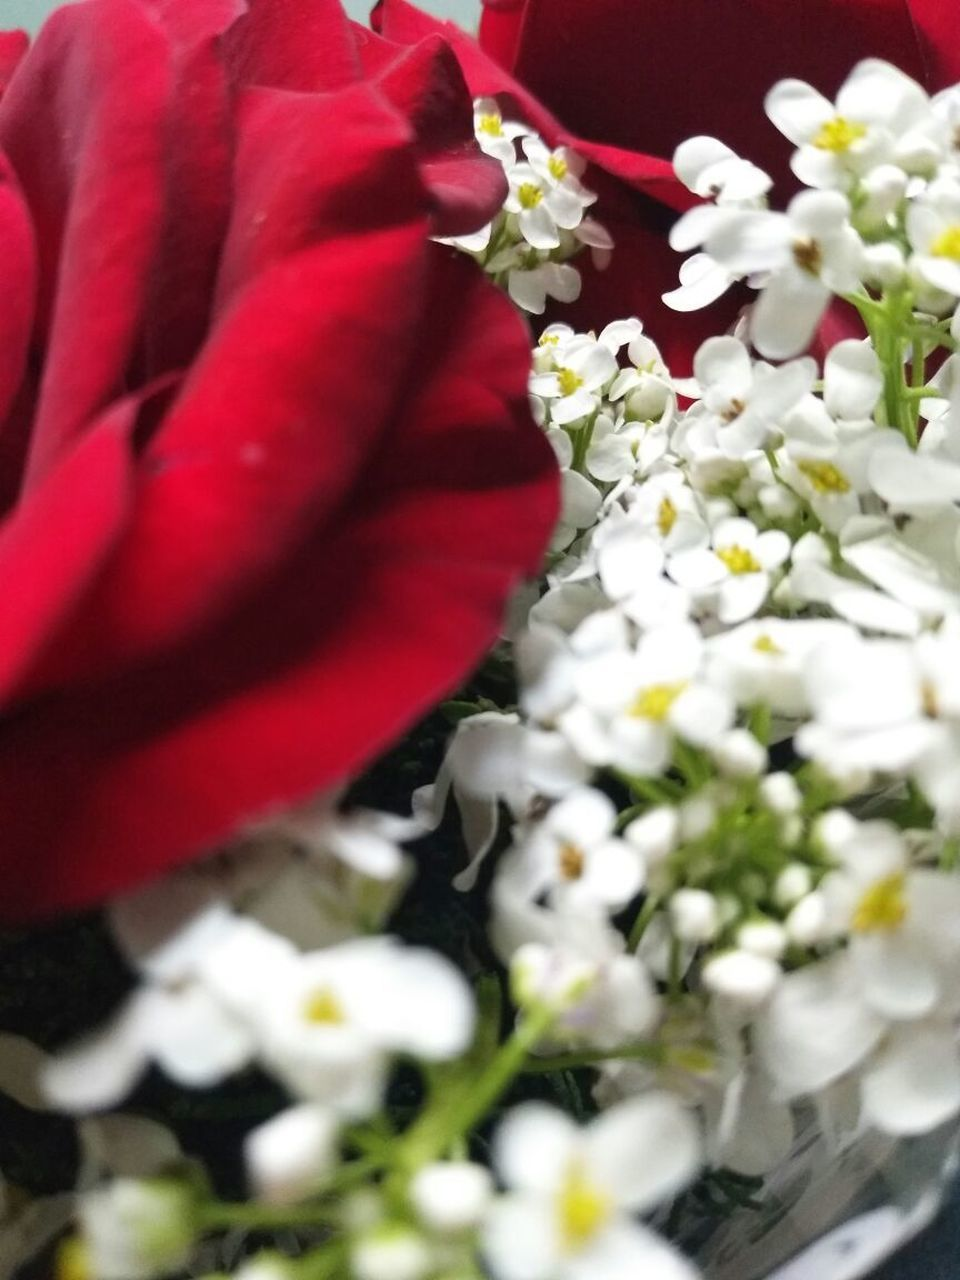 flower, petal, fragility, close-up, white color, nature, red, freshness, flower head, bouquet, no people, beauty in nature, wedding, growth, plant, day, outdoors